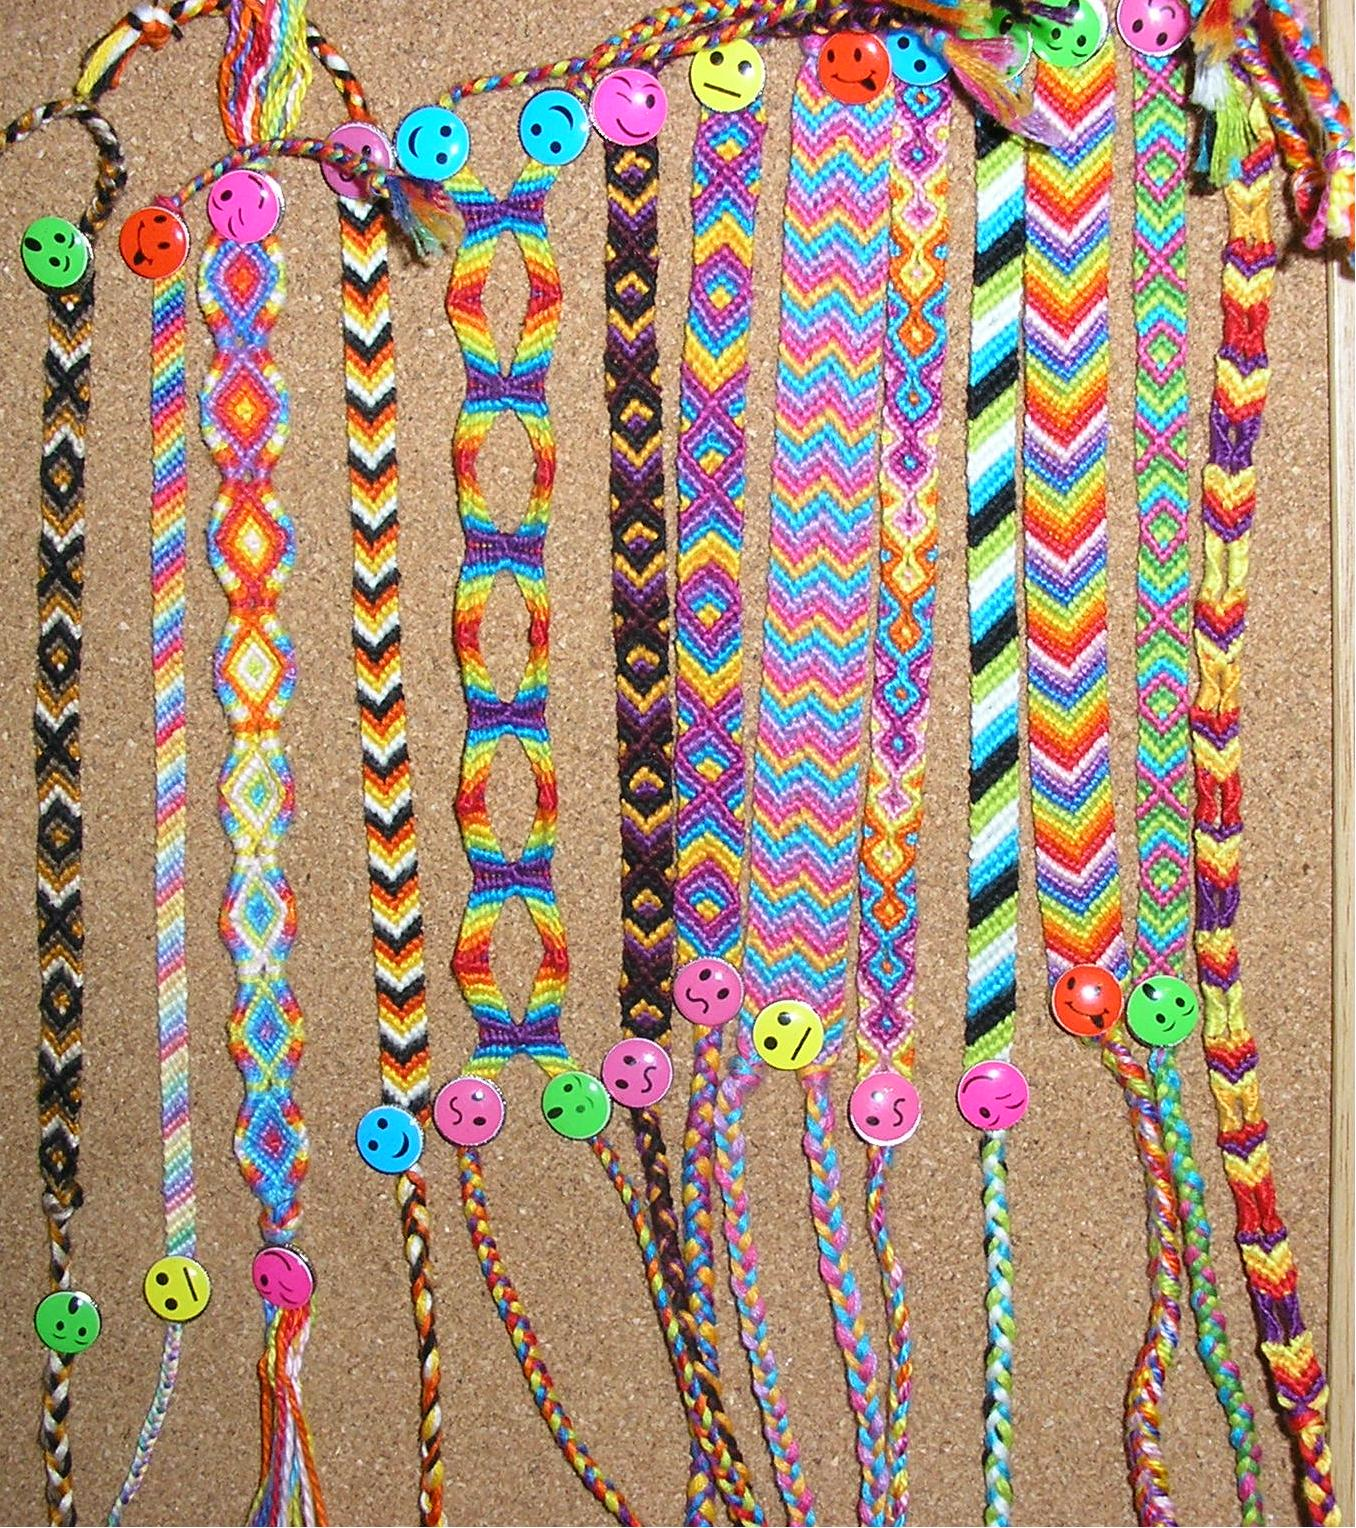 Bracelet Zipper Galleries: Friendship Bracelet Directions